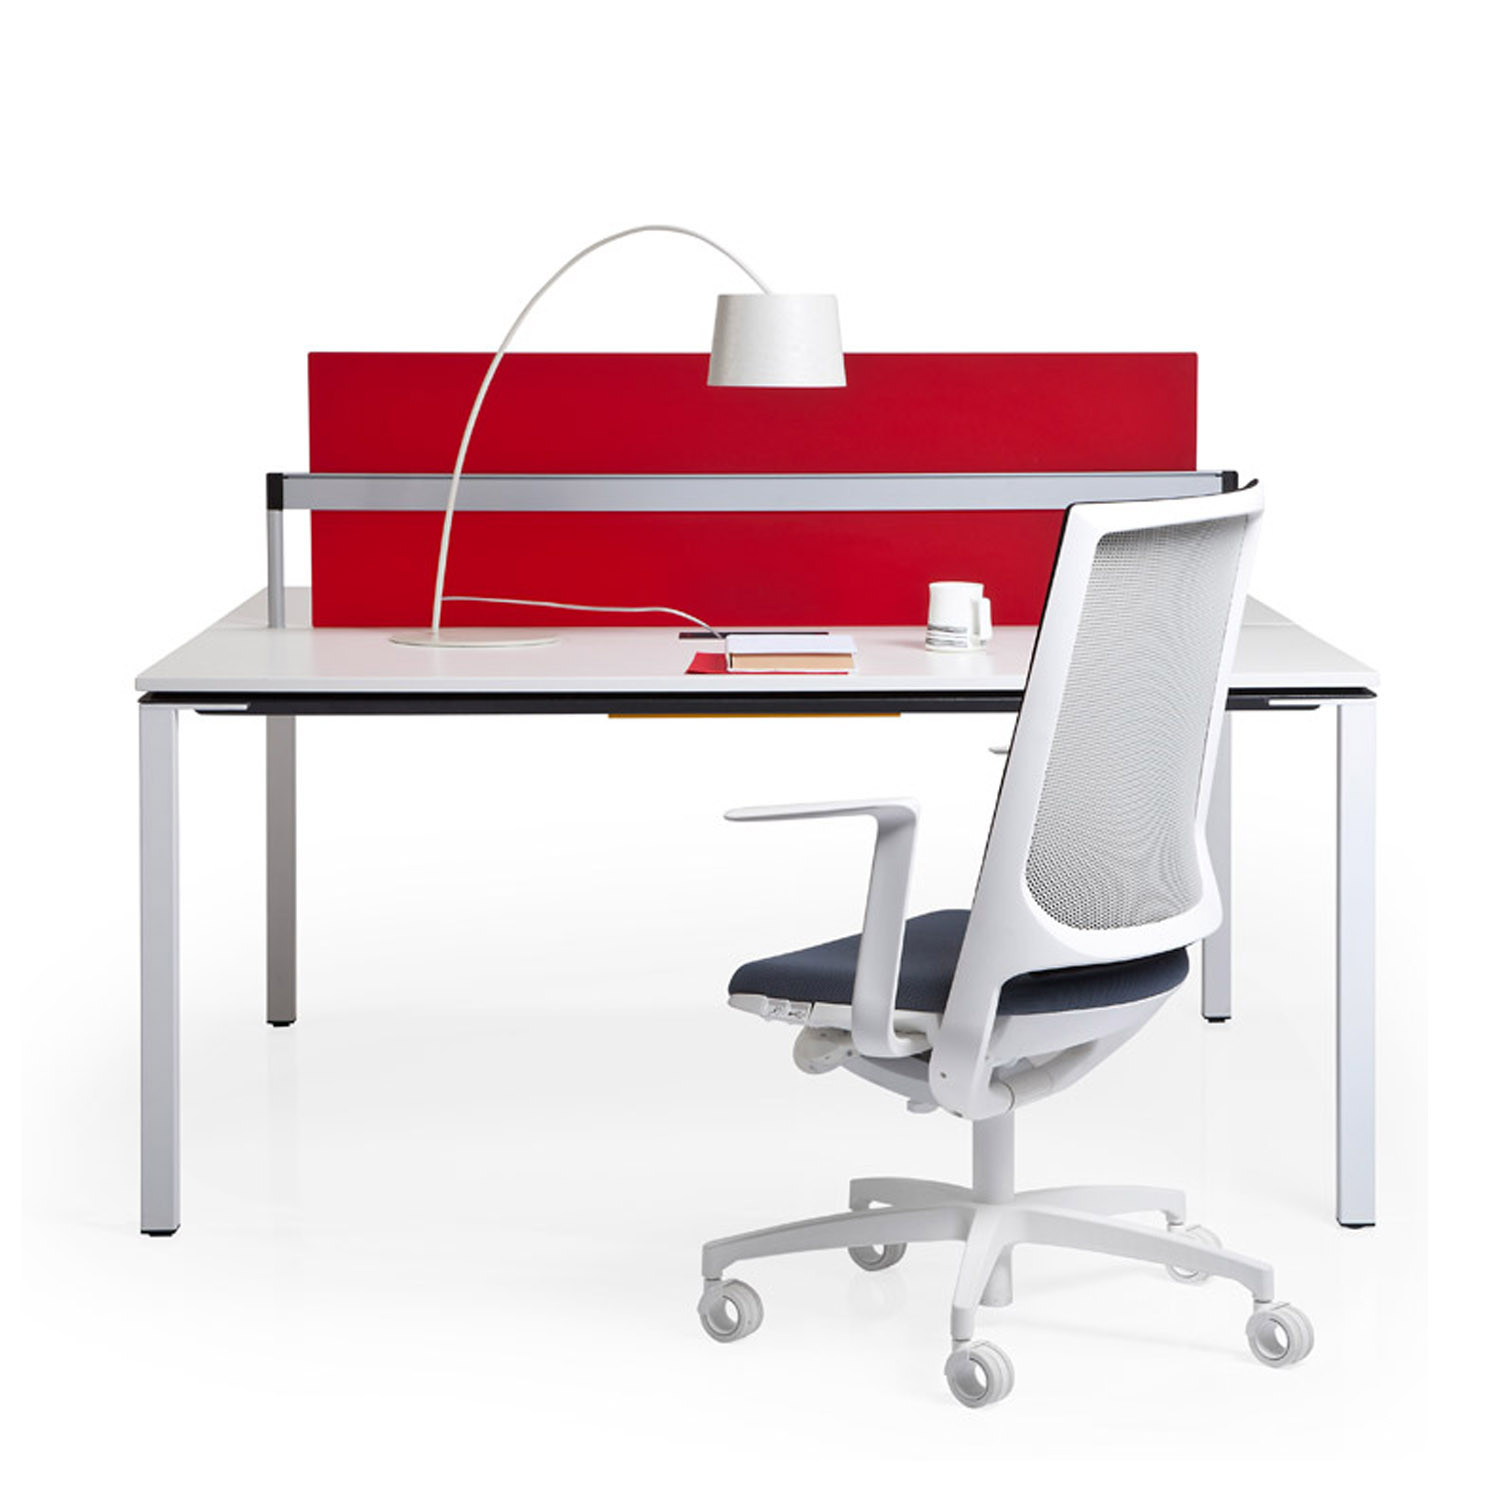 Barbari Single Bench Desks